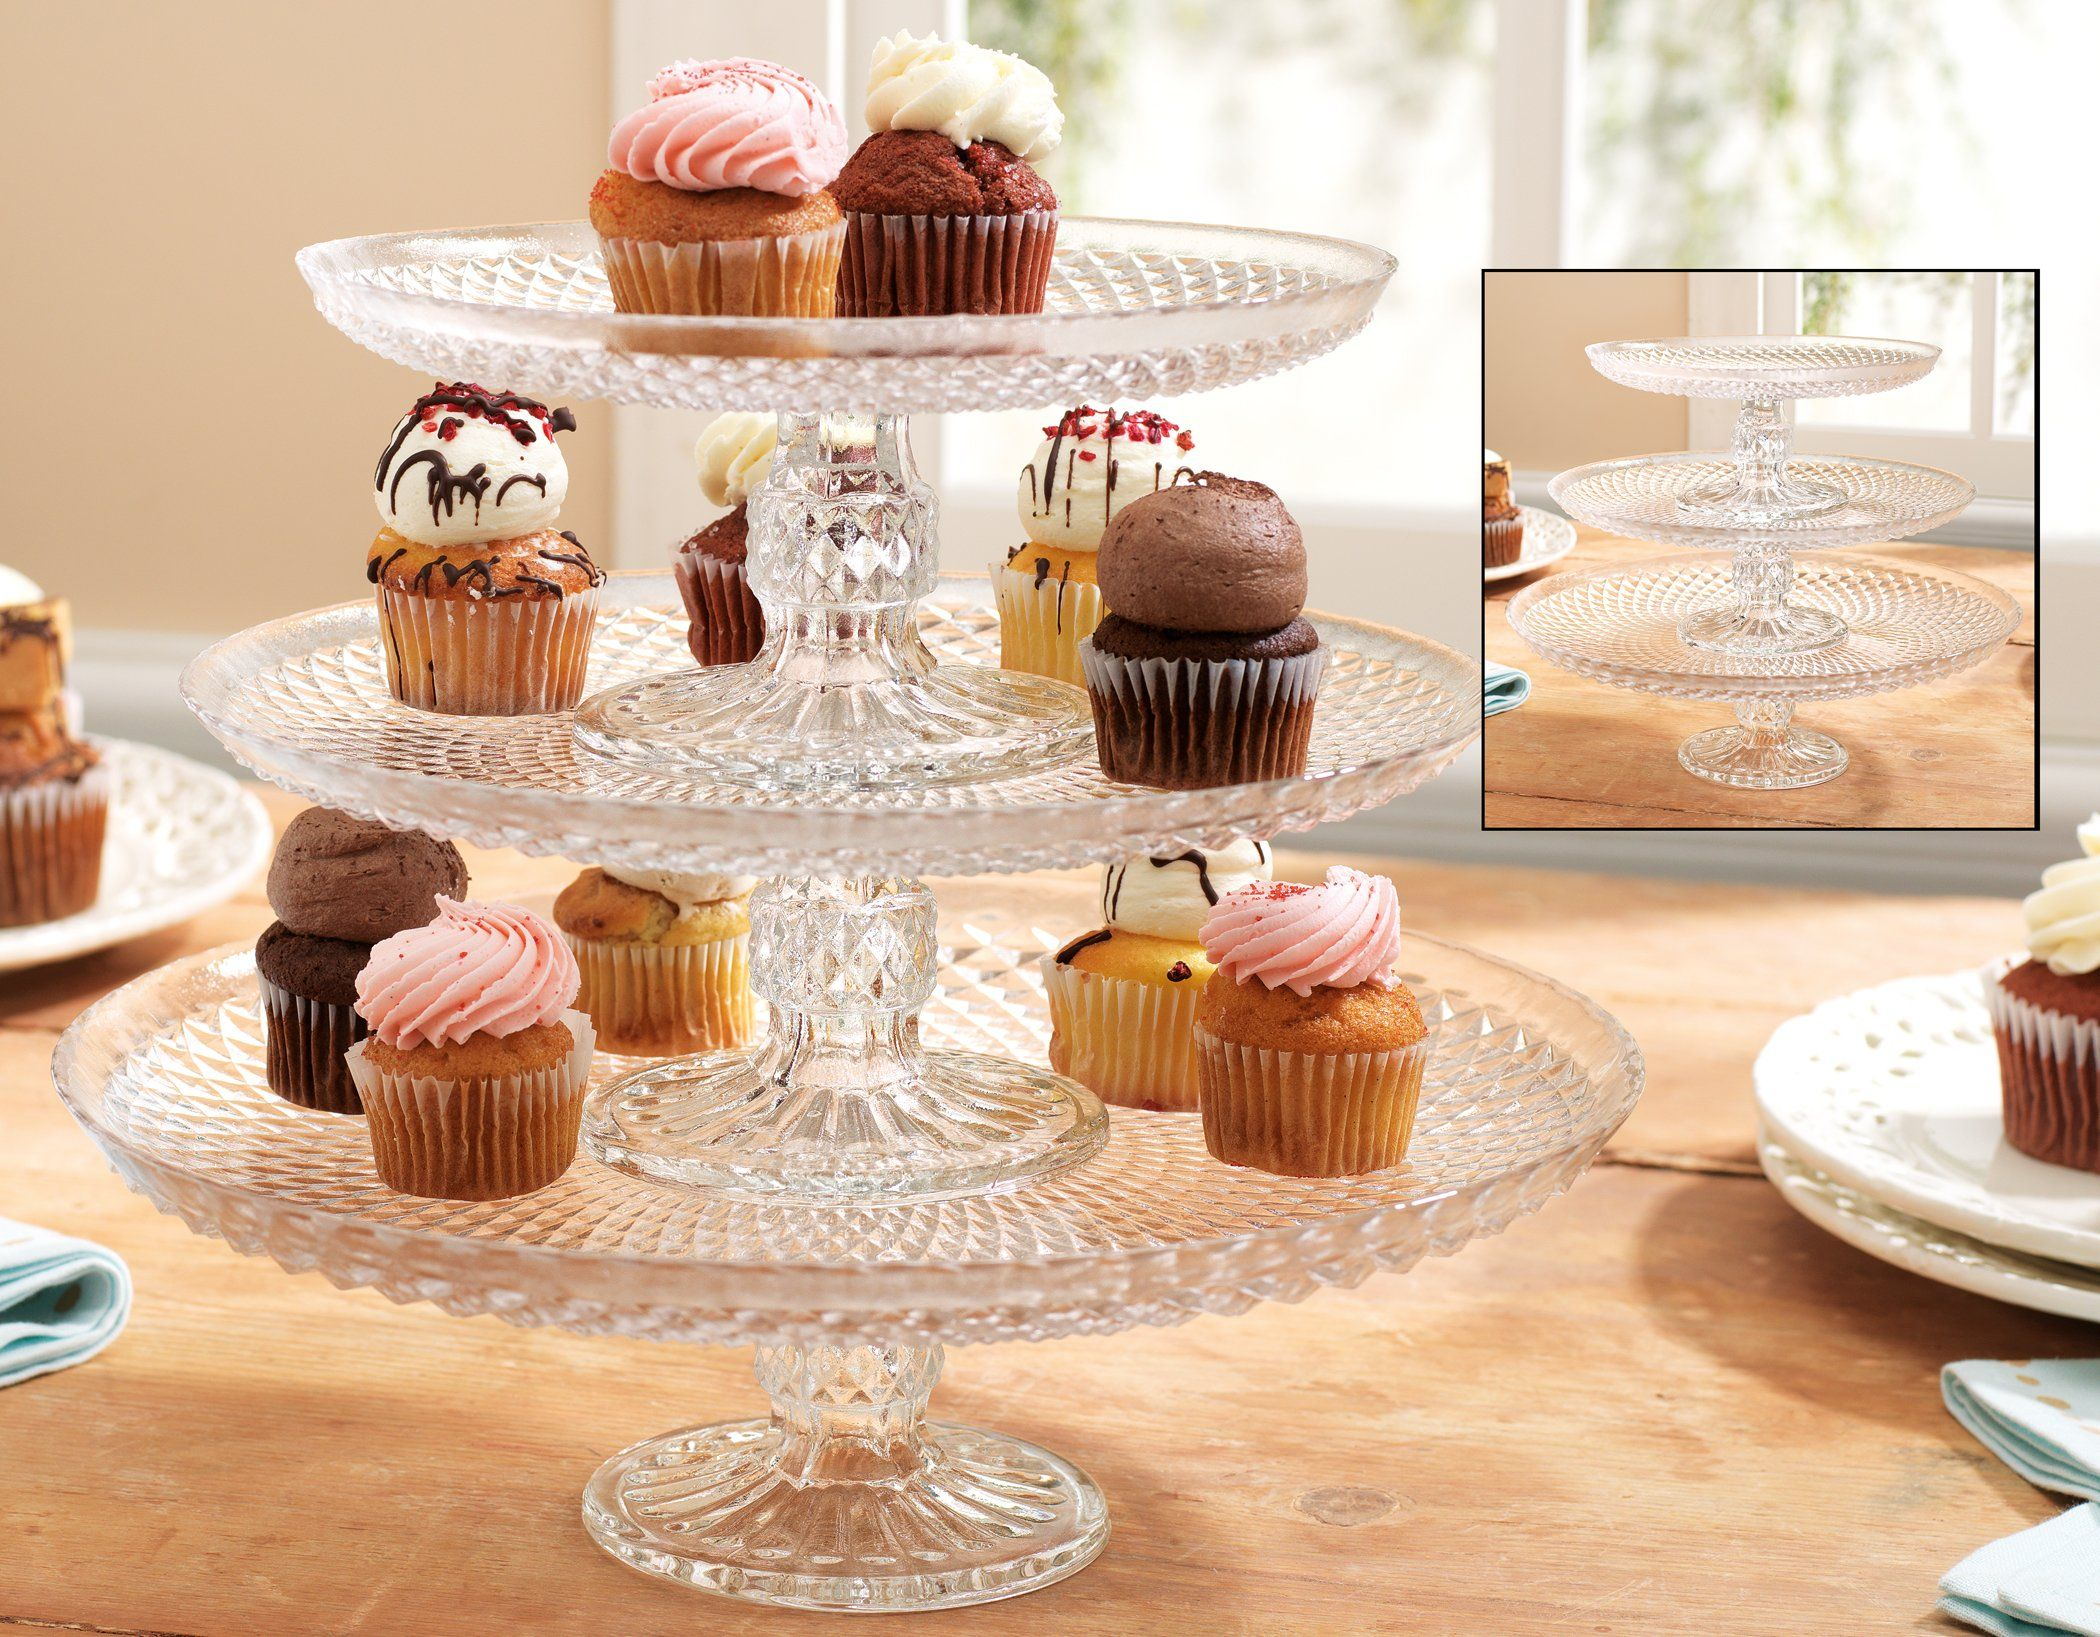 Amazon.com: Attractive Stackable Diamondcut Glass cupcake or cake stand - 3 tiered or individual Footed Cake Plate: Kitchen & Dining